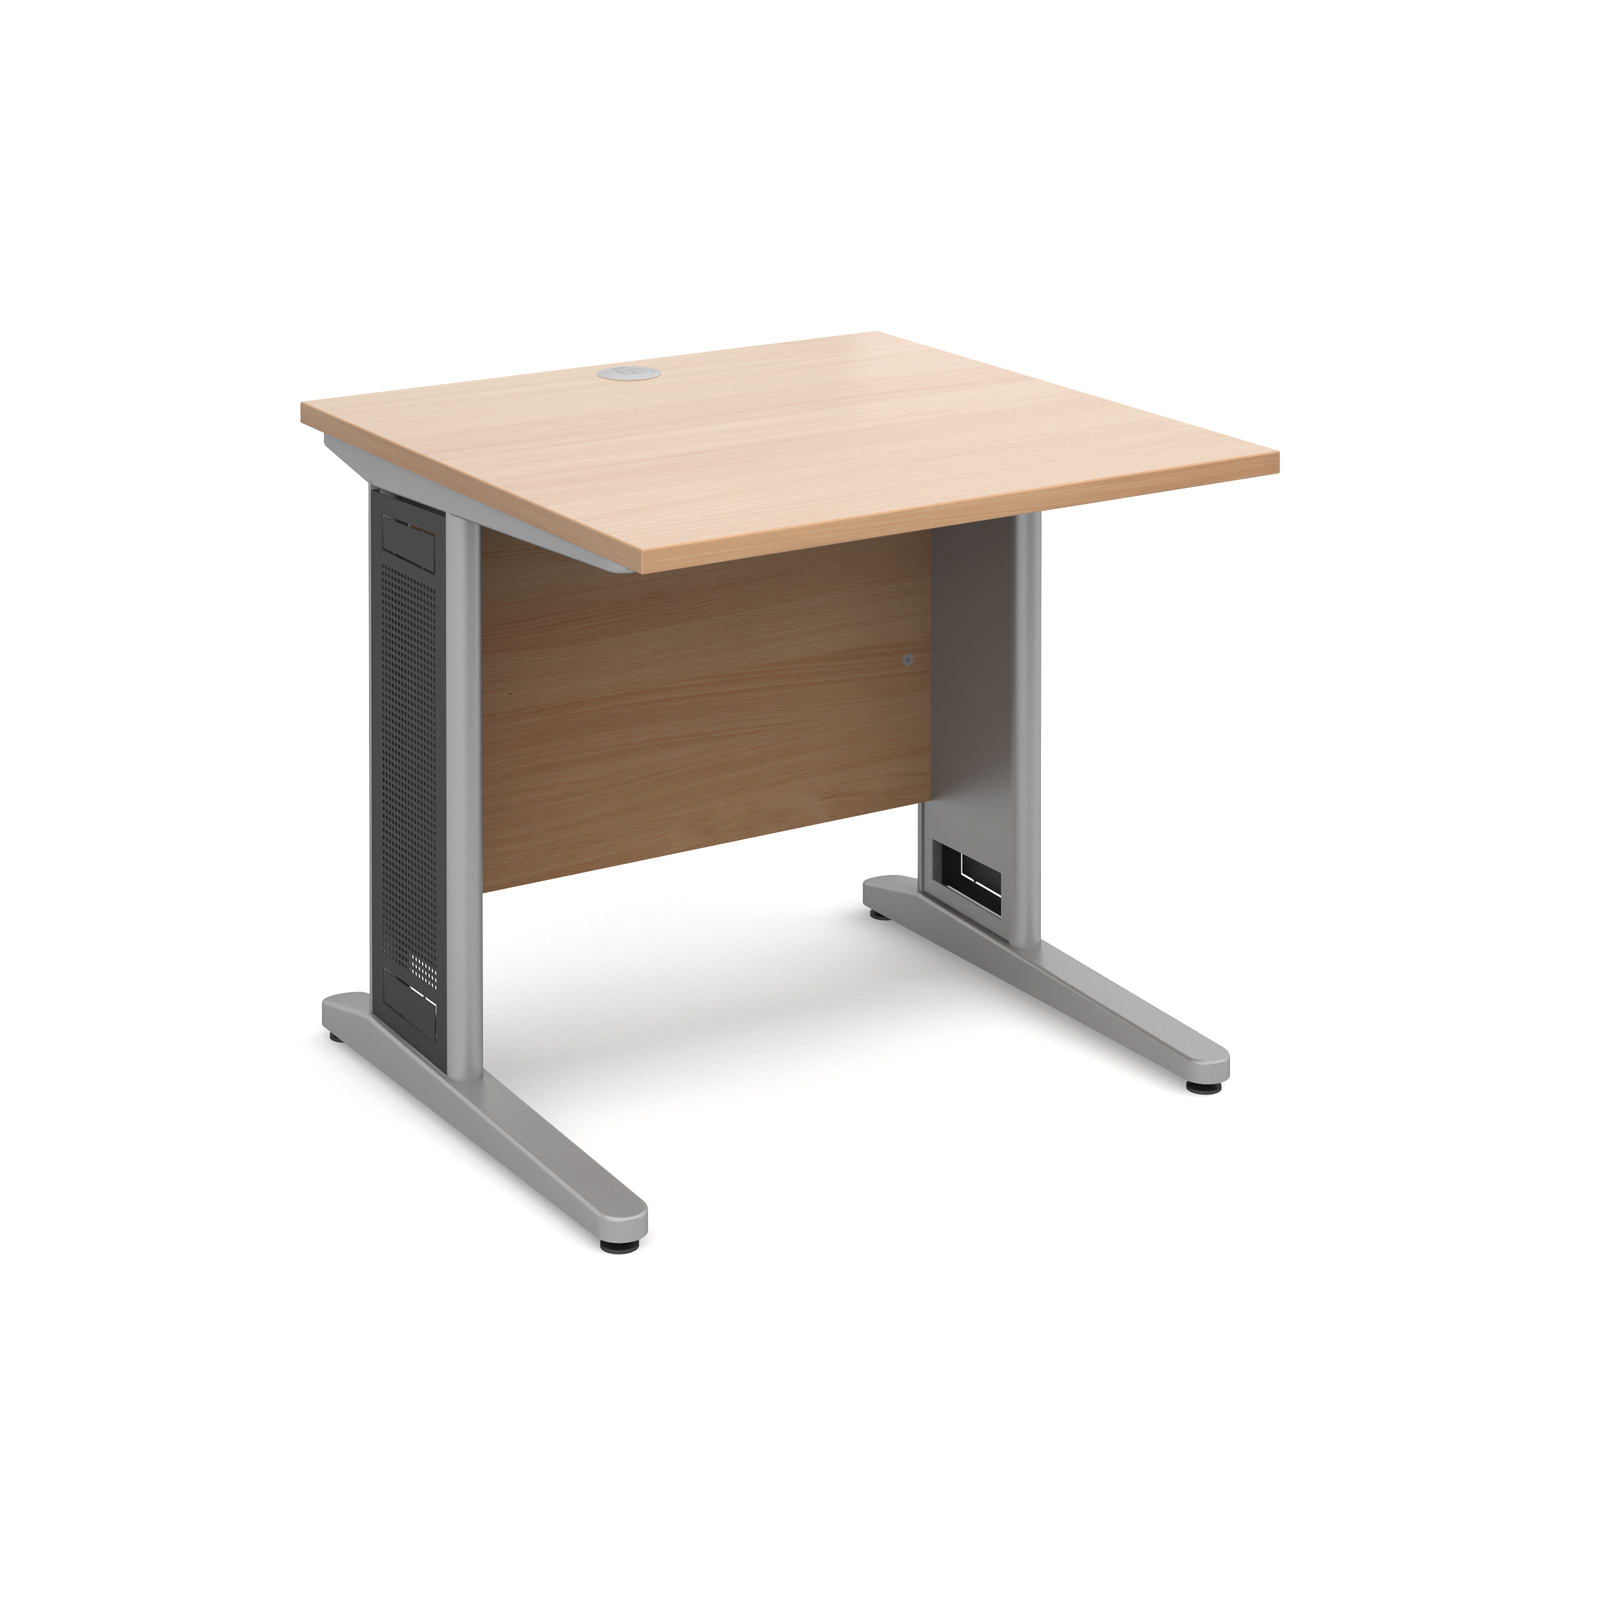 Largo straight desk 800mm x 800mm - silver cantilever frame with removable grill, beech top